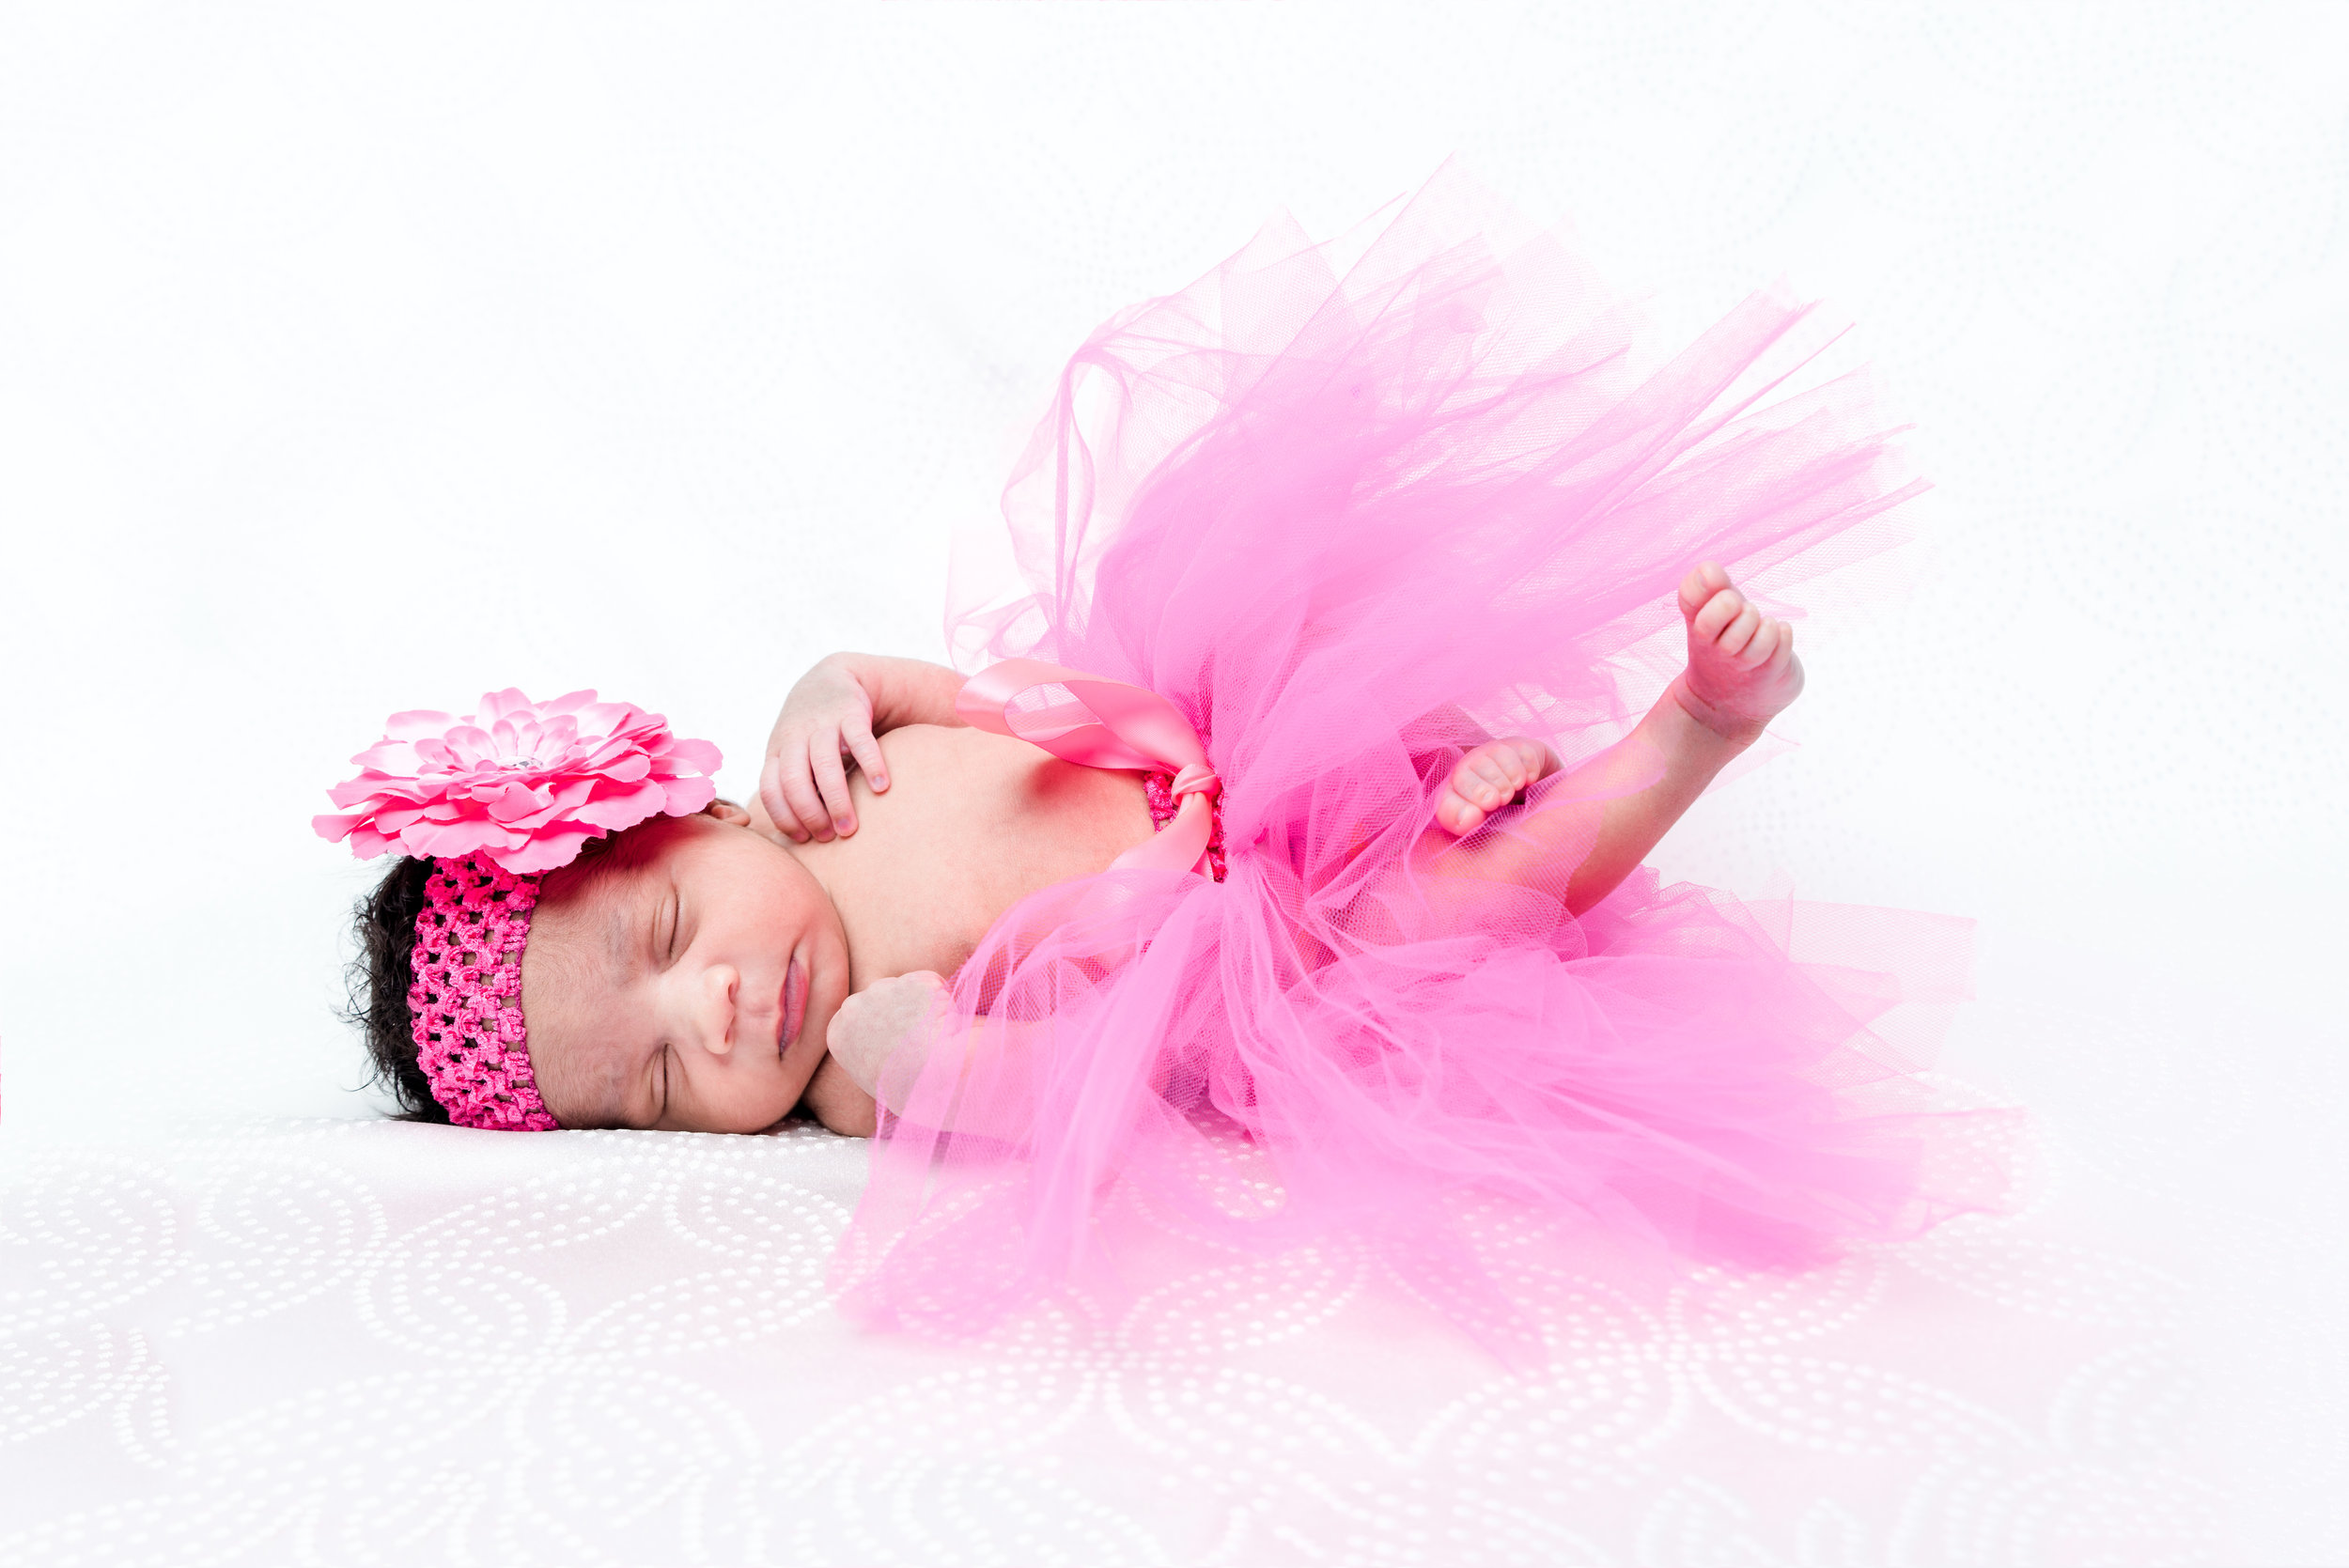 2017_December_02-Walls_Newborn_and_Family_Shoot-43629-Edit.jpg